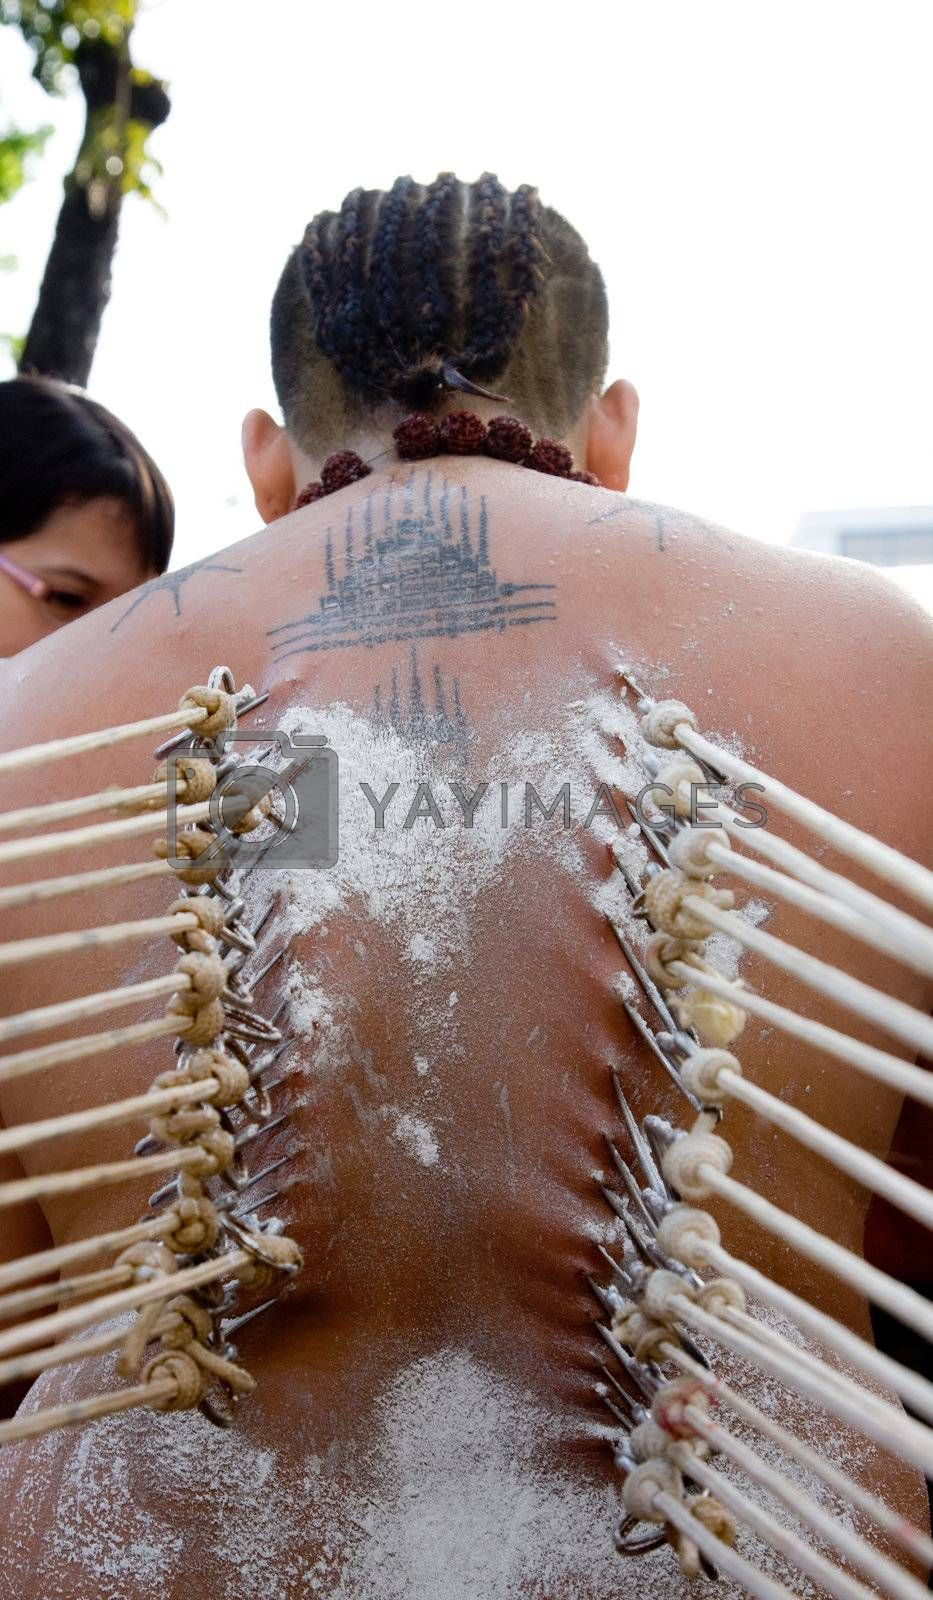 a devotee of thaipusam with hooks pierce through their backs in their beliefs